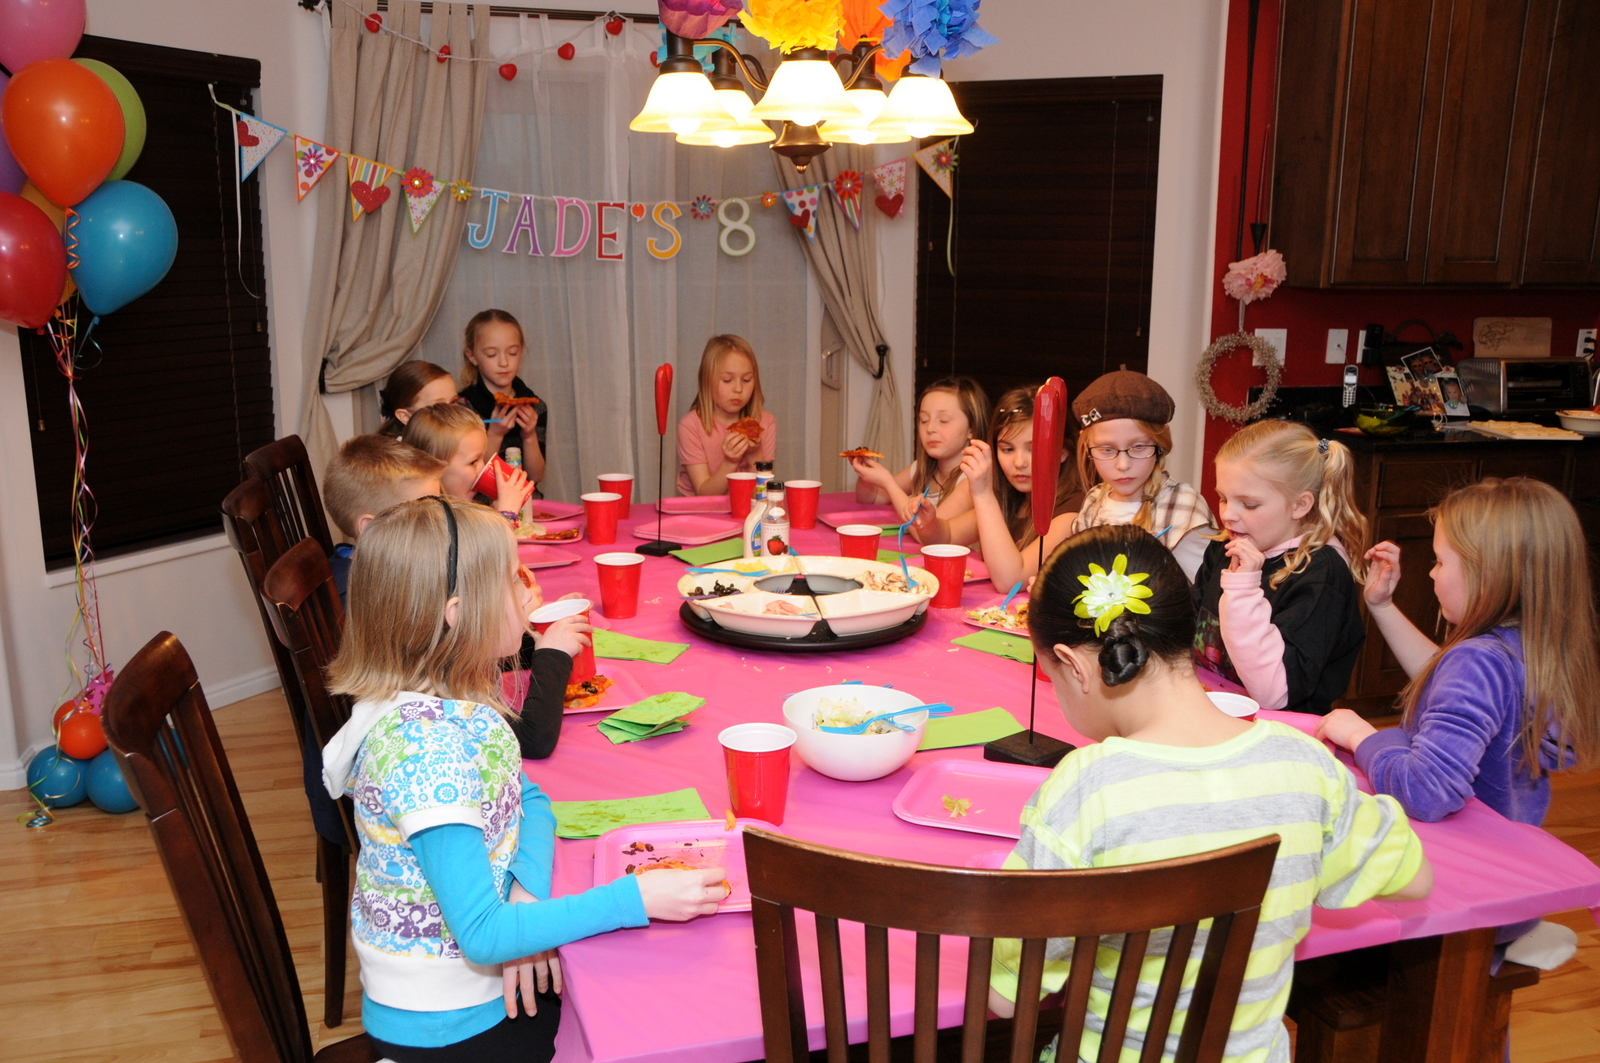 8 year old birthday party « the family trifecta